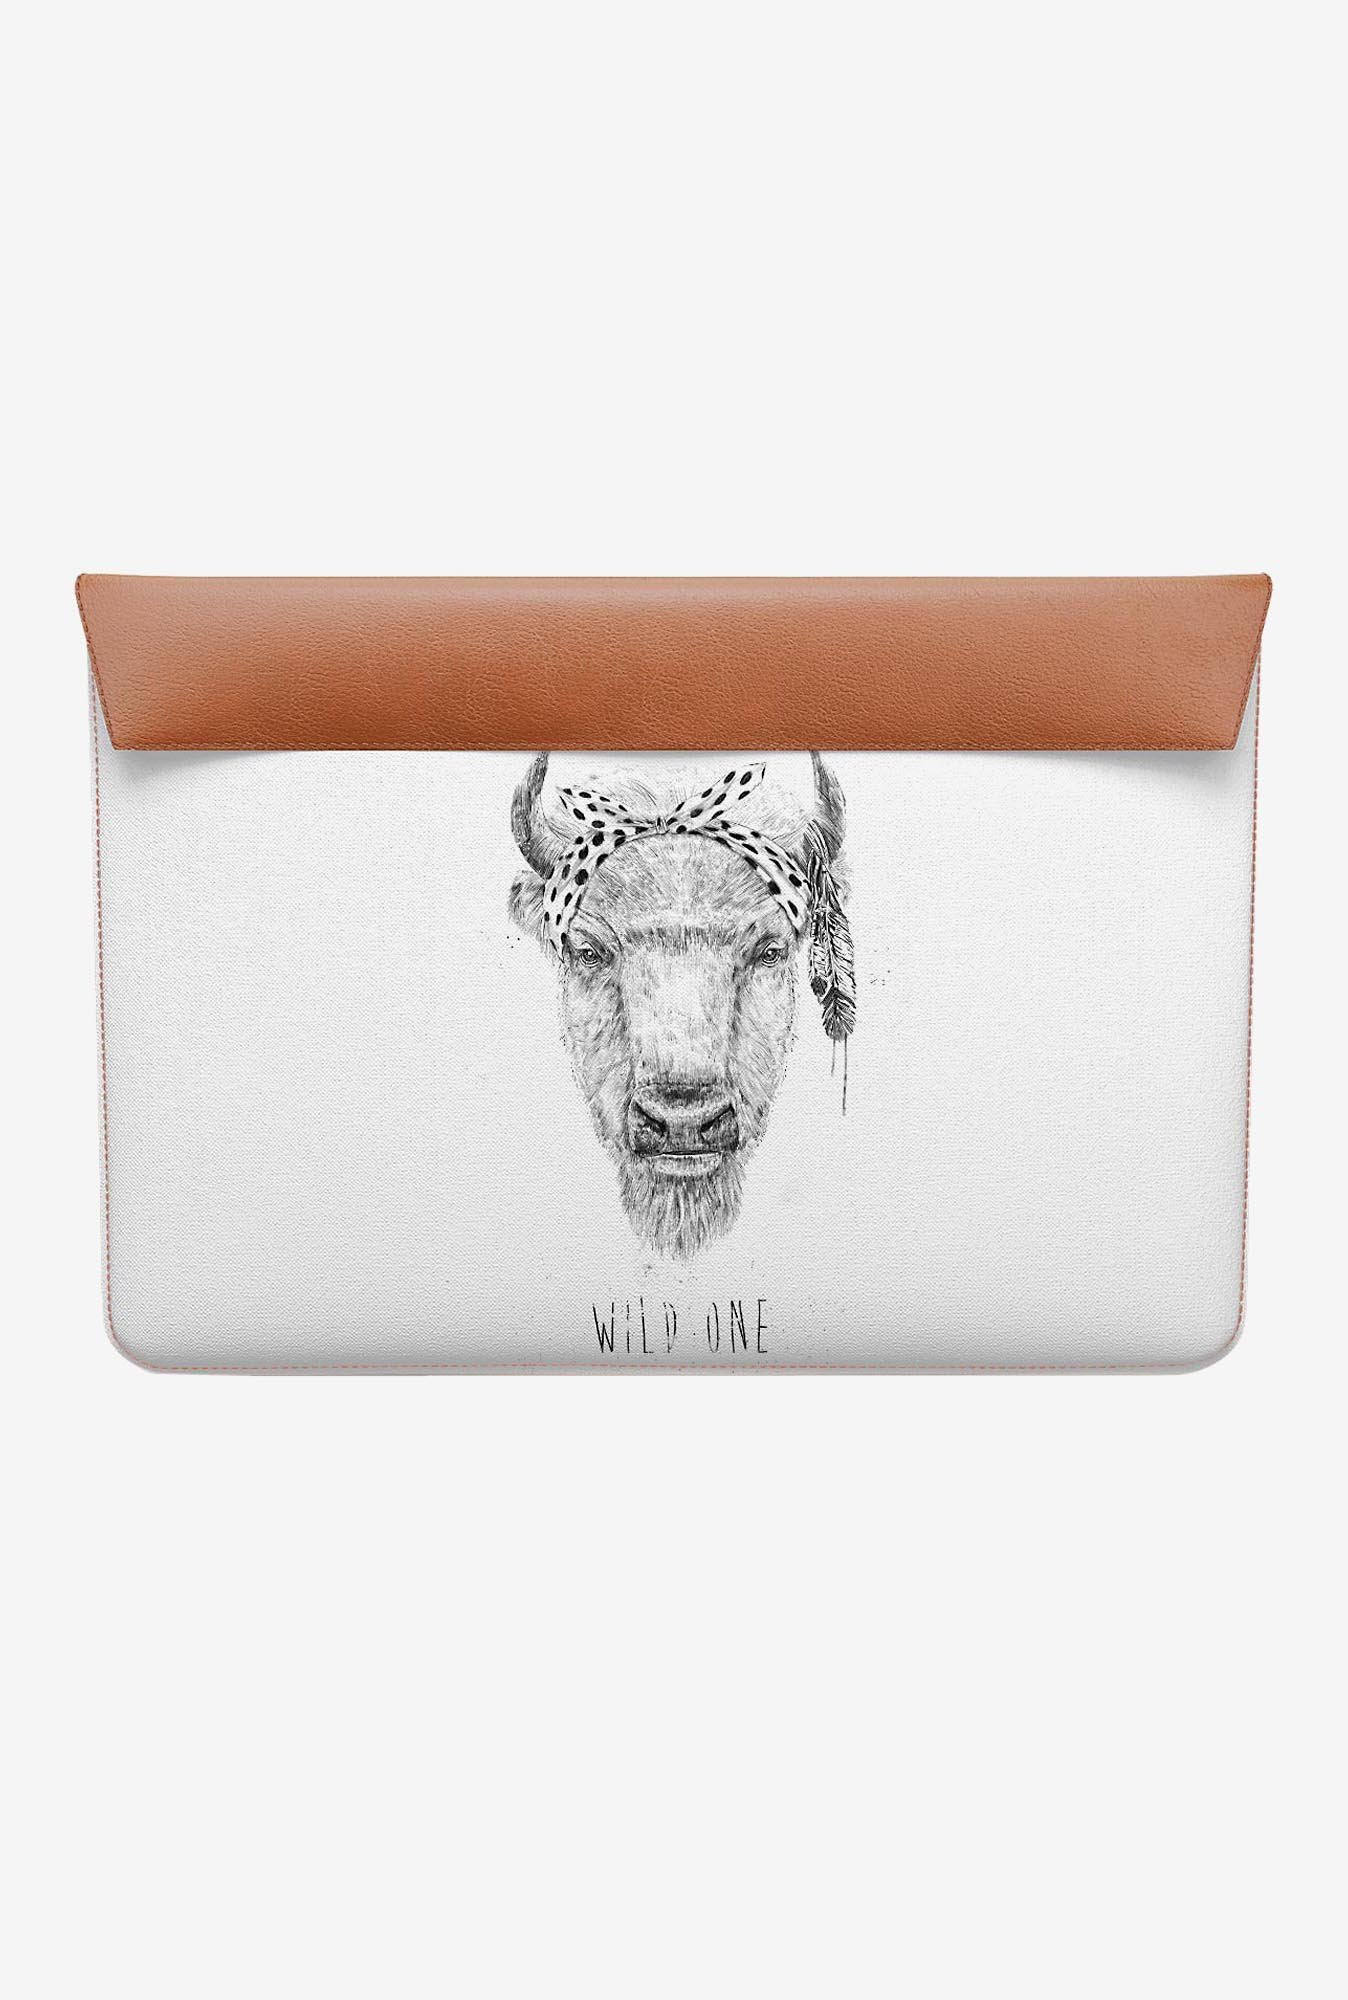 DailyObjects Wild One MacBook 12 Envelope Sleeve